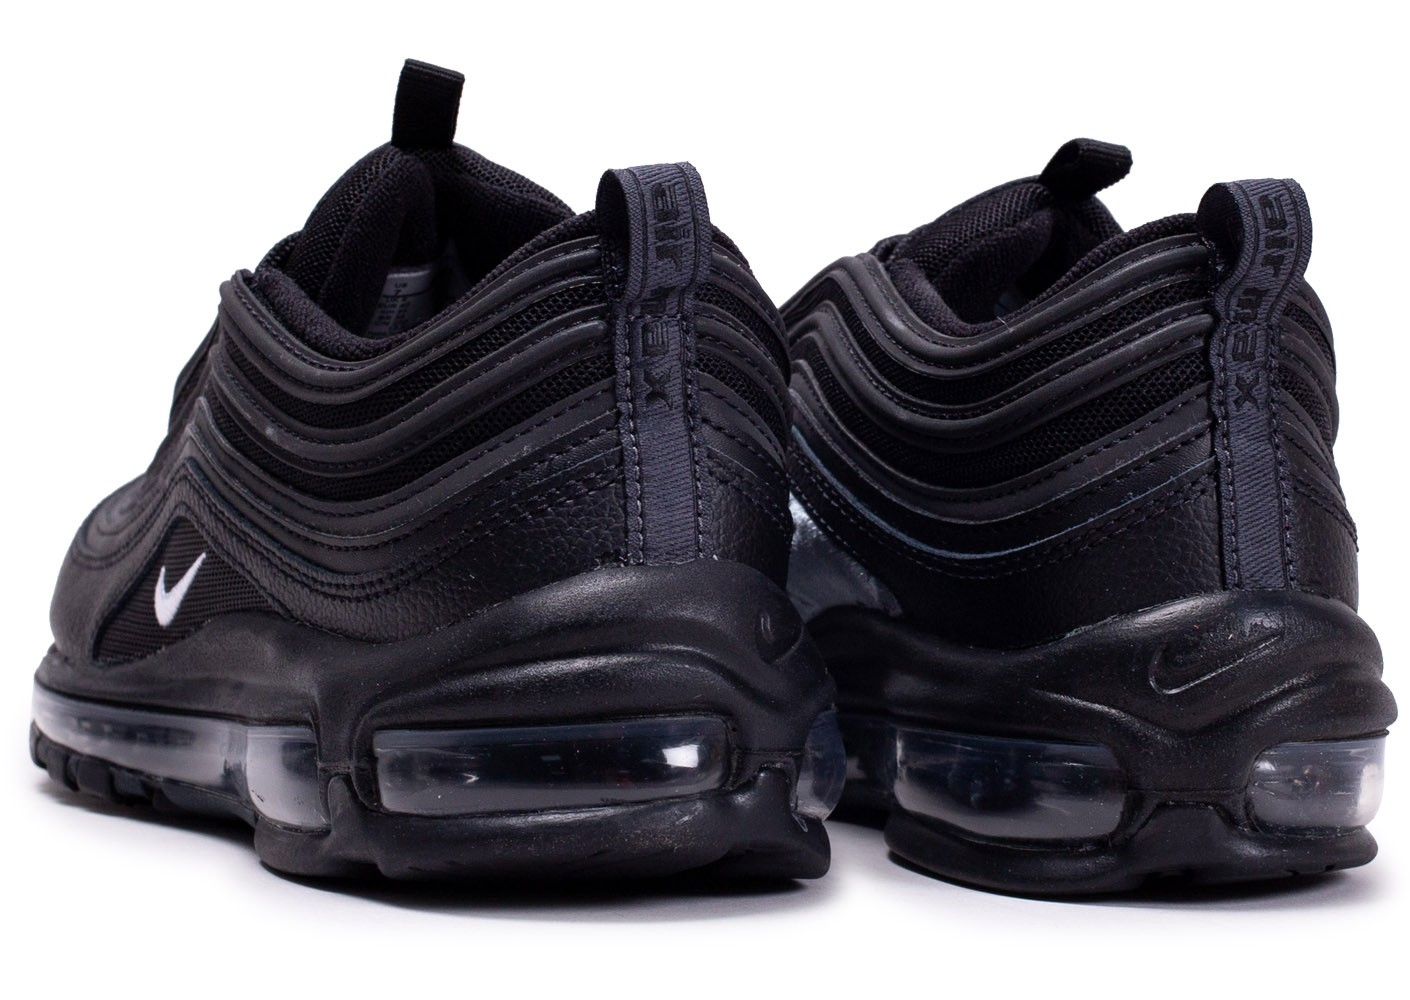 Nike Air Max 97 noir anthracite - Chaussures Baskets homme ...